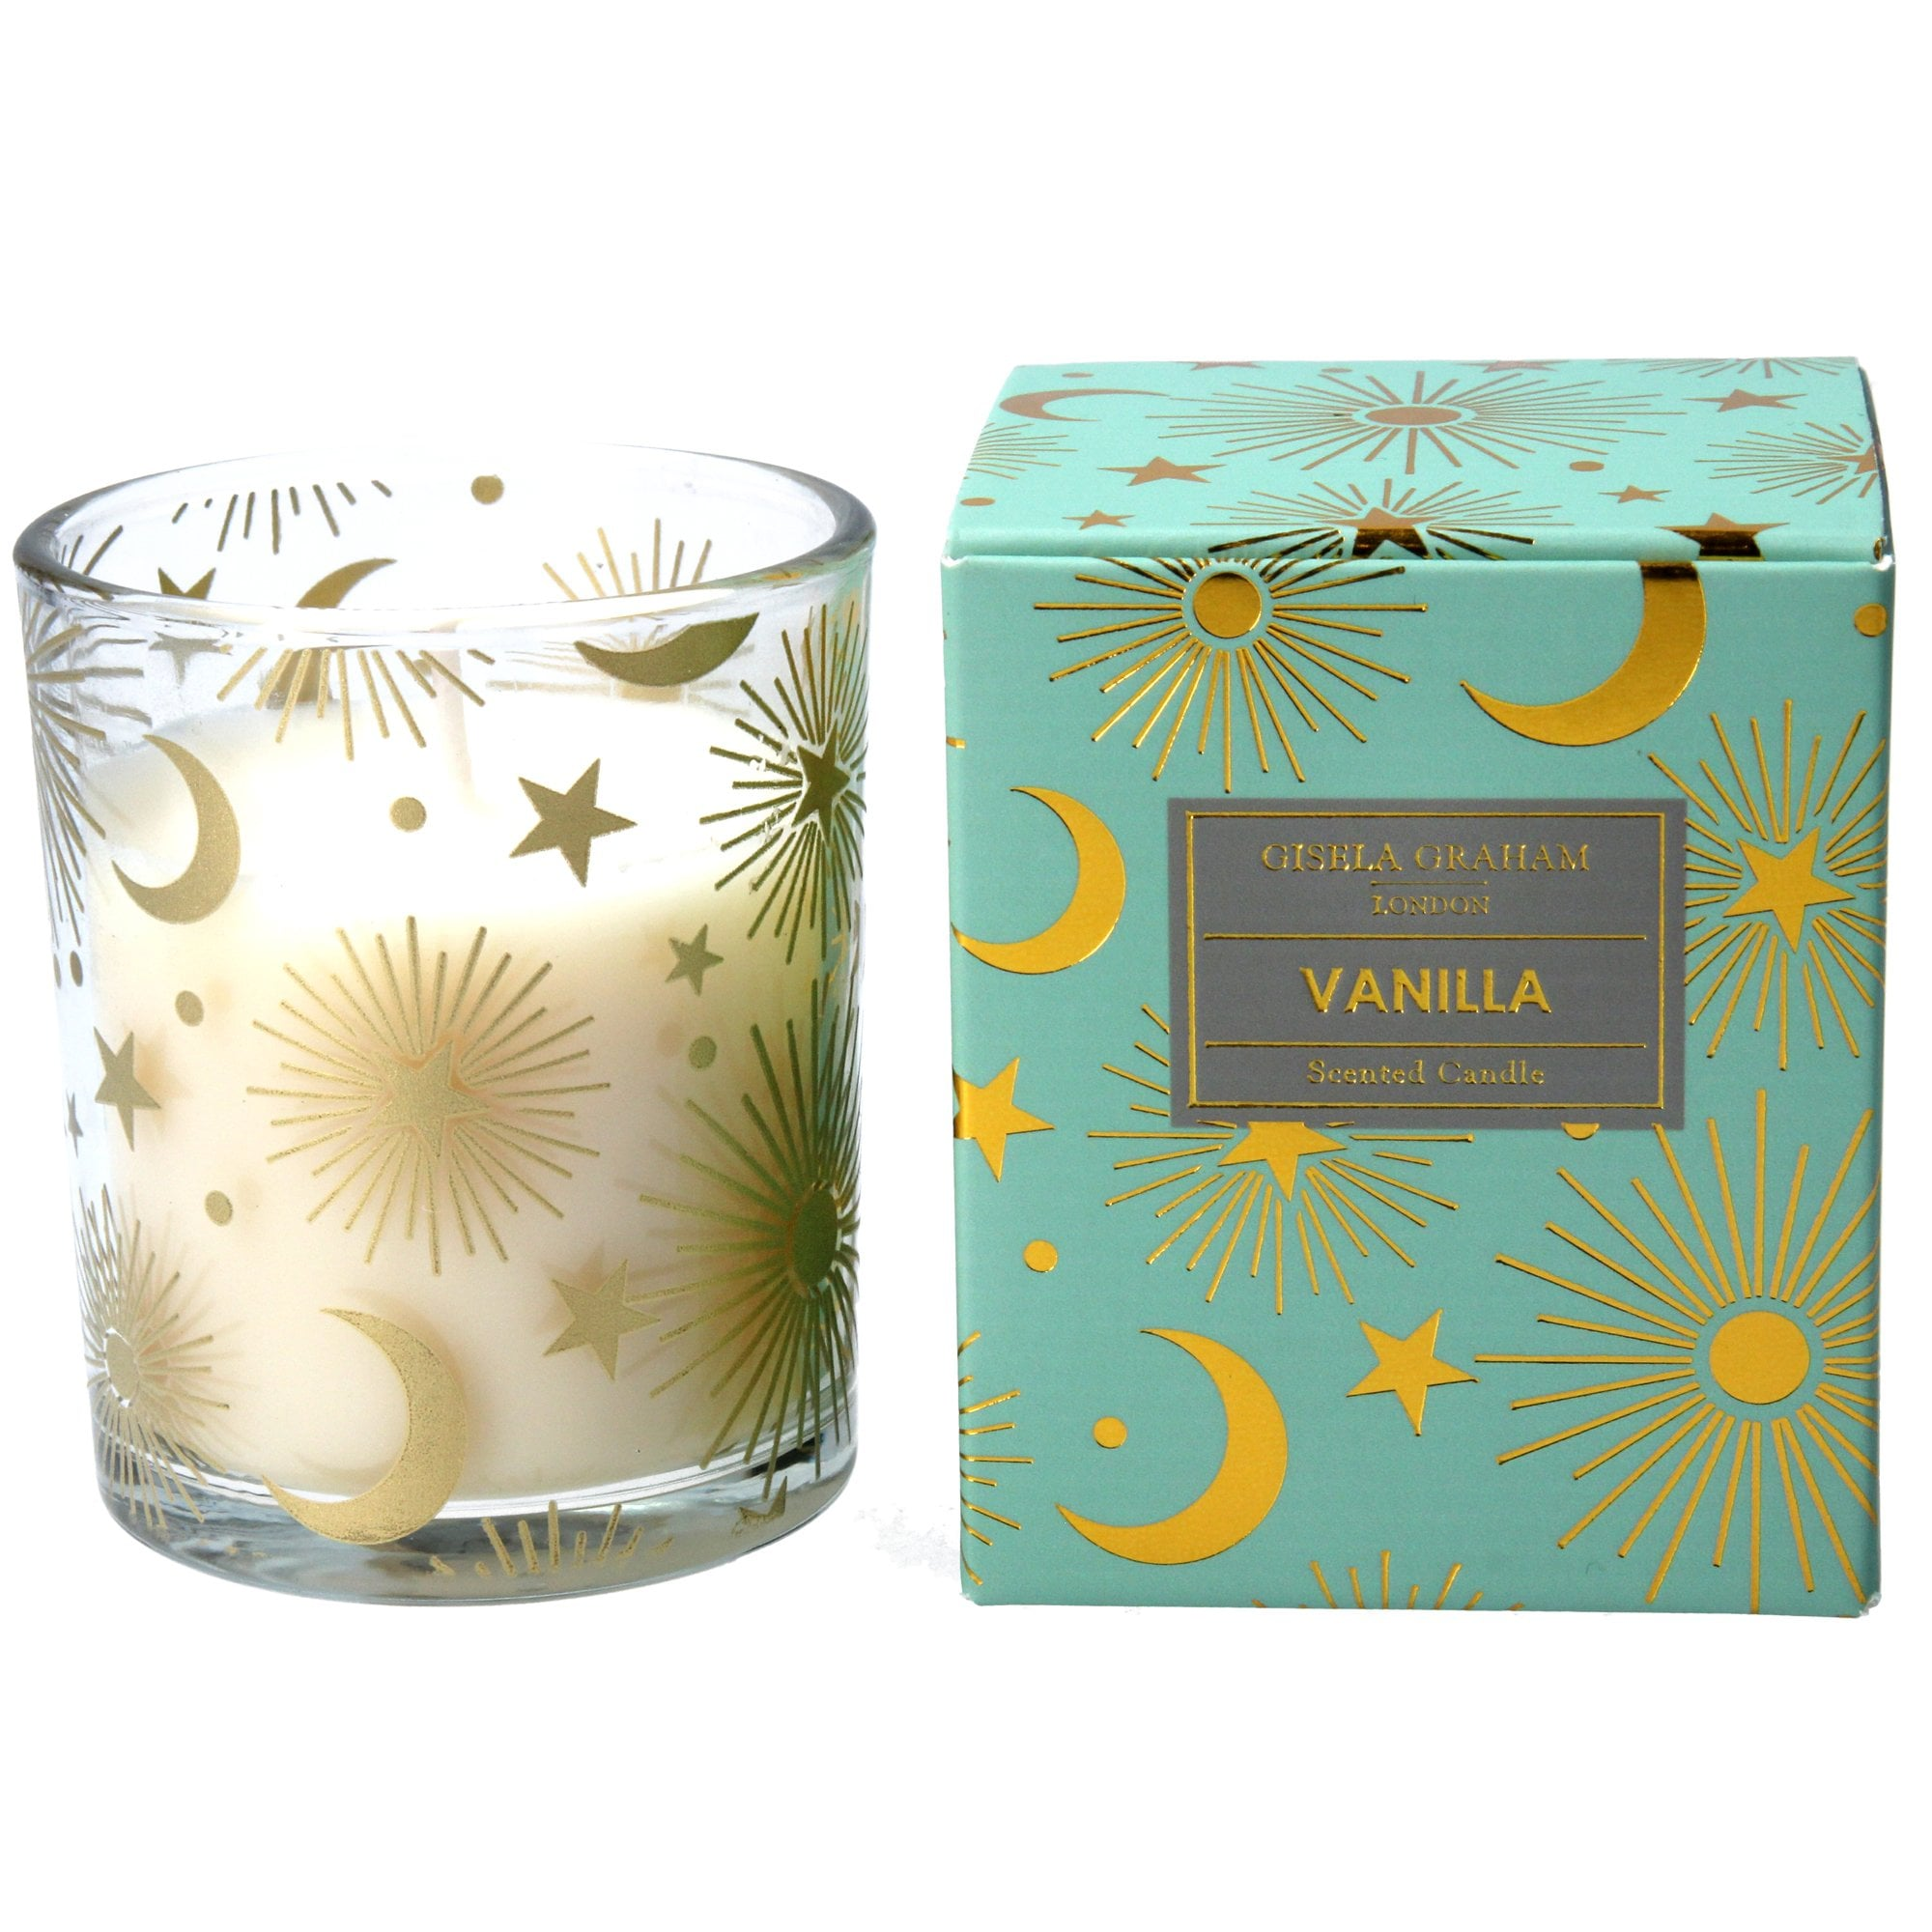 Gisela Graham Celestial Vanilla Scented Candle Small